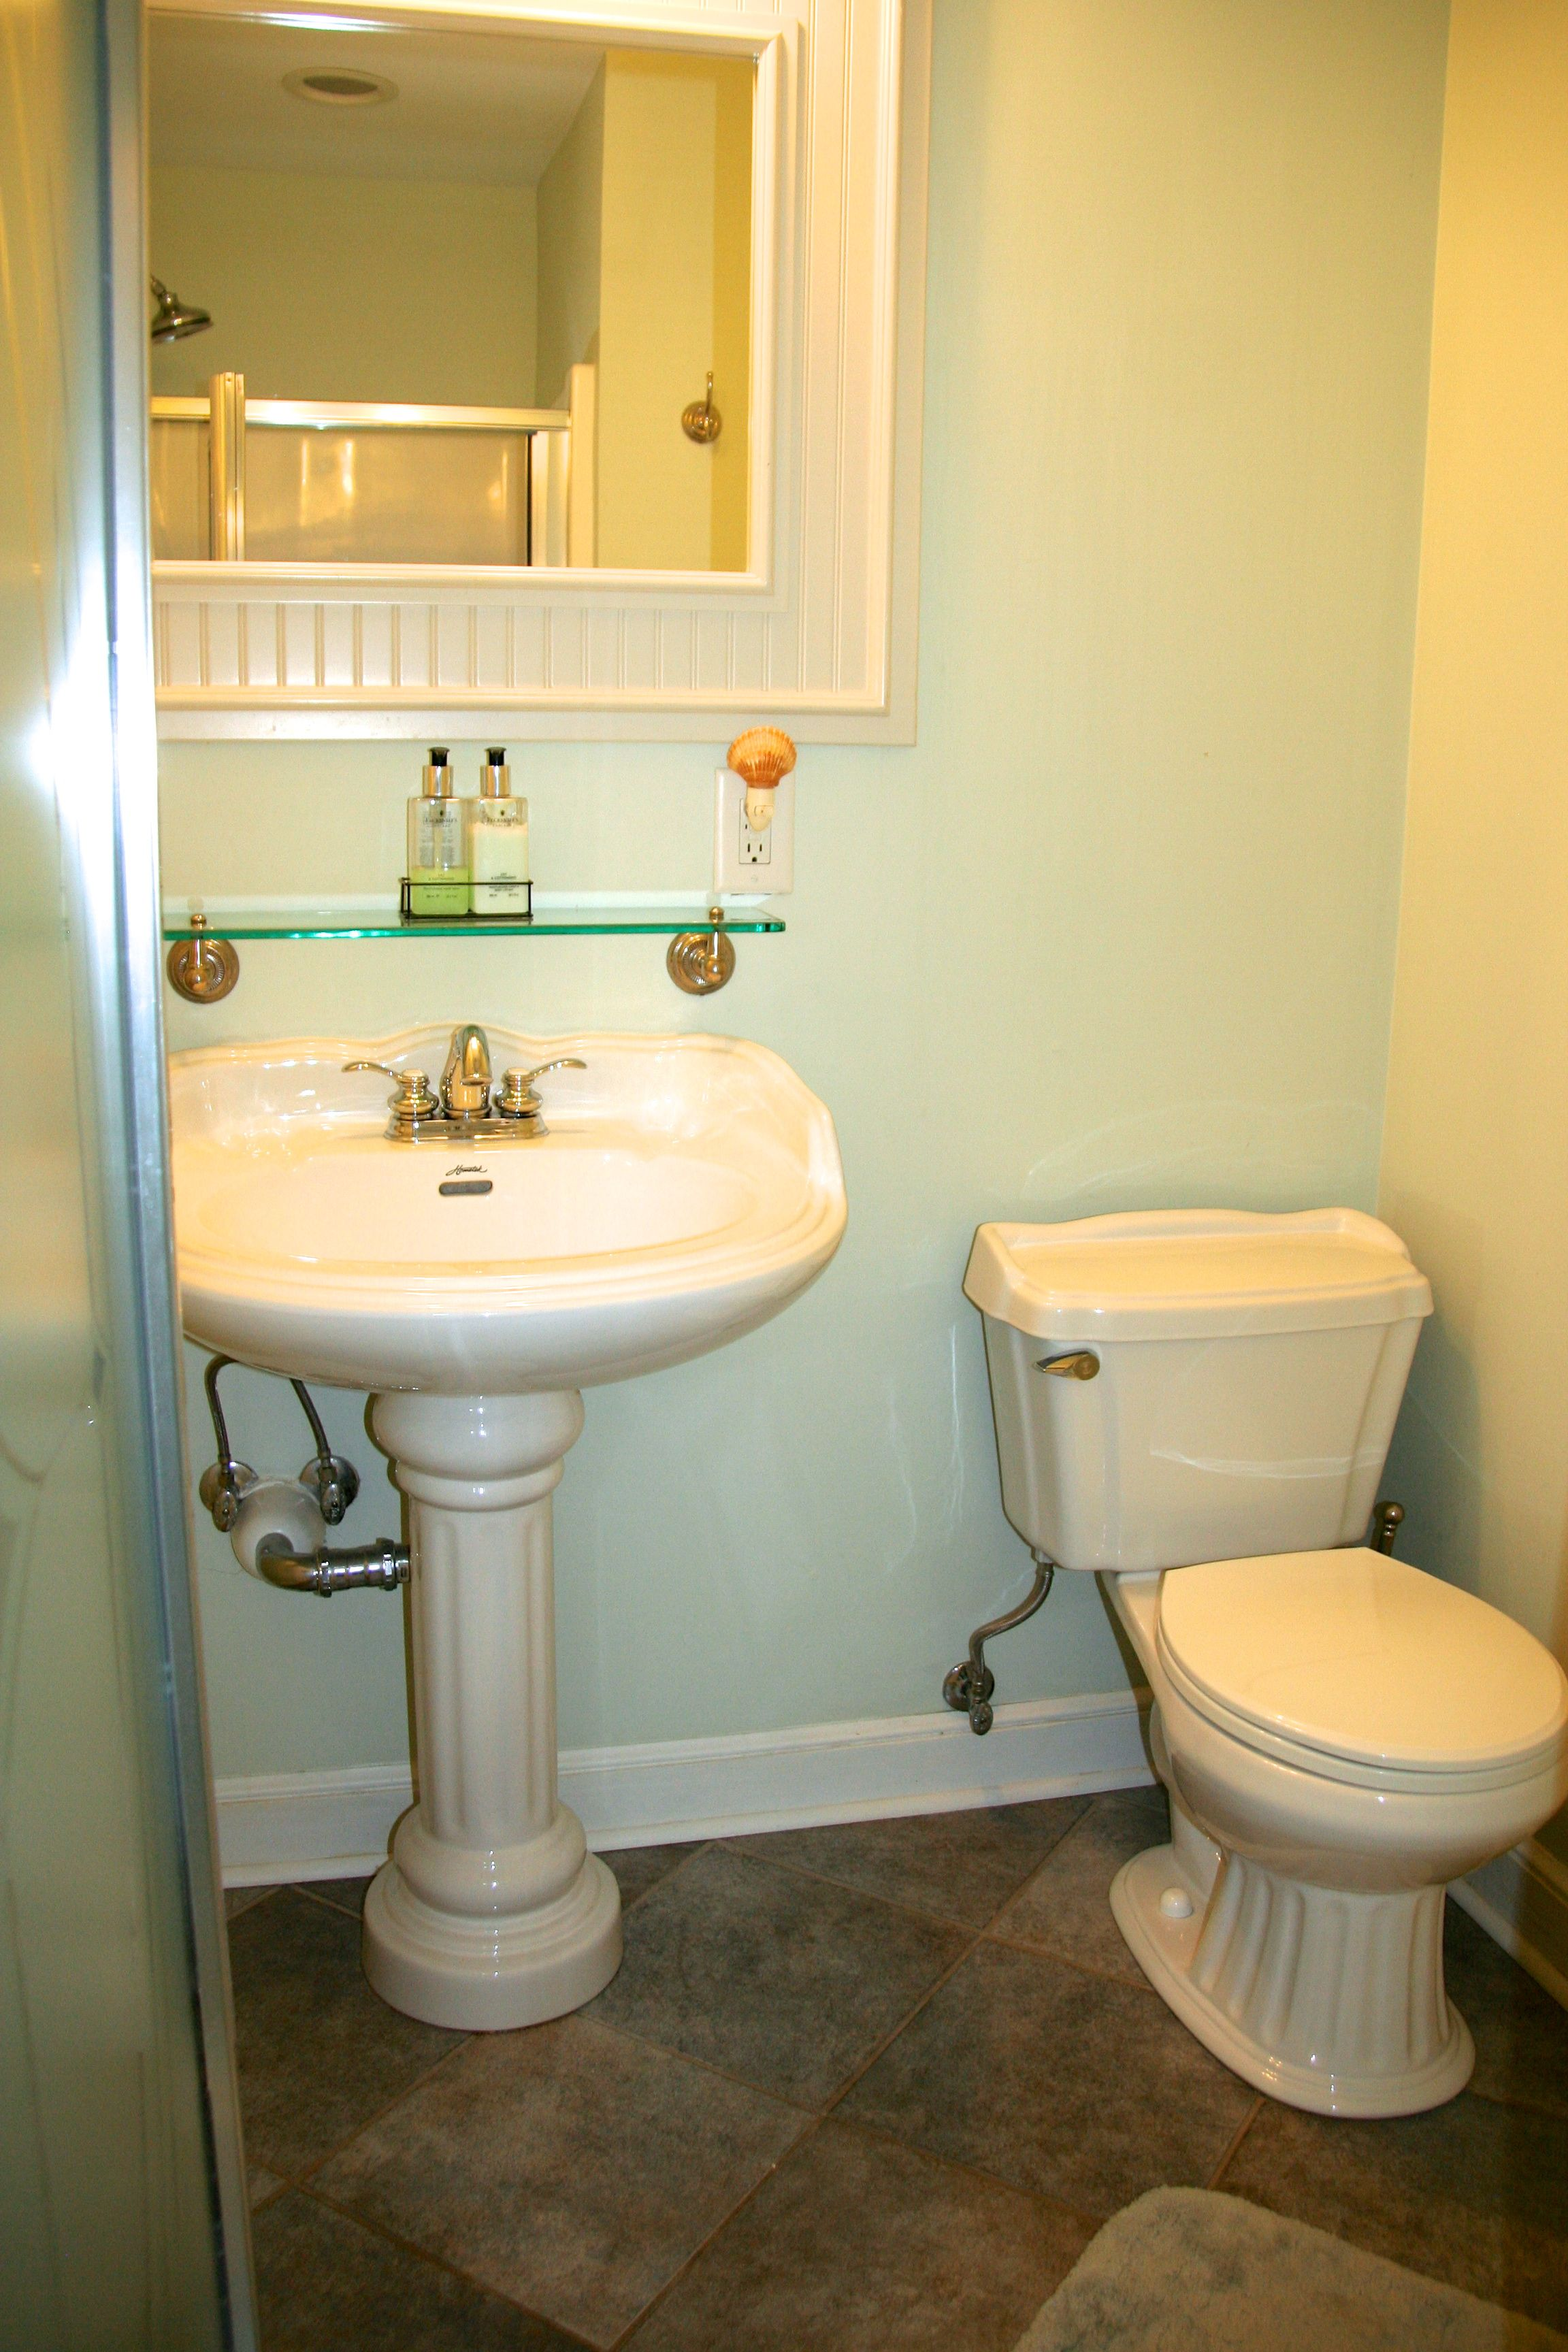 The bathroom has a tile flooring, a pedestal sink, and shower.